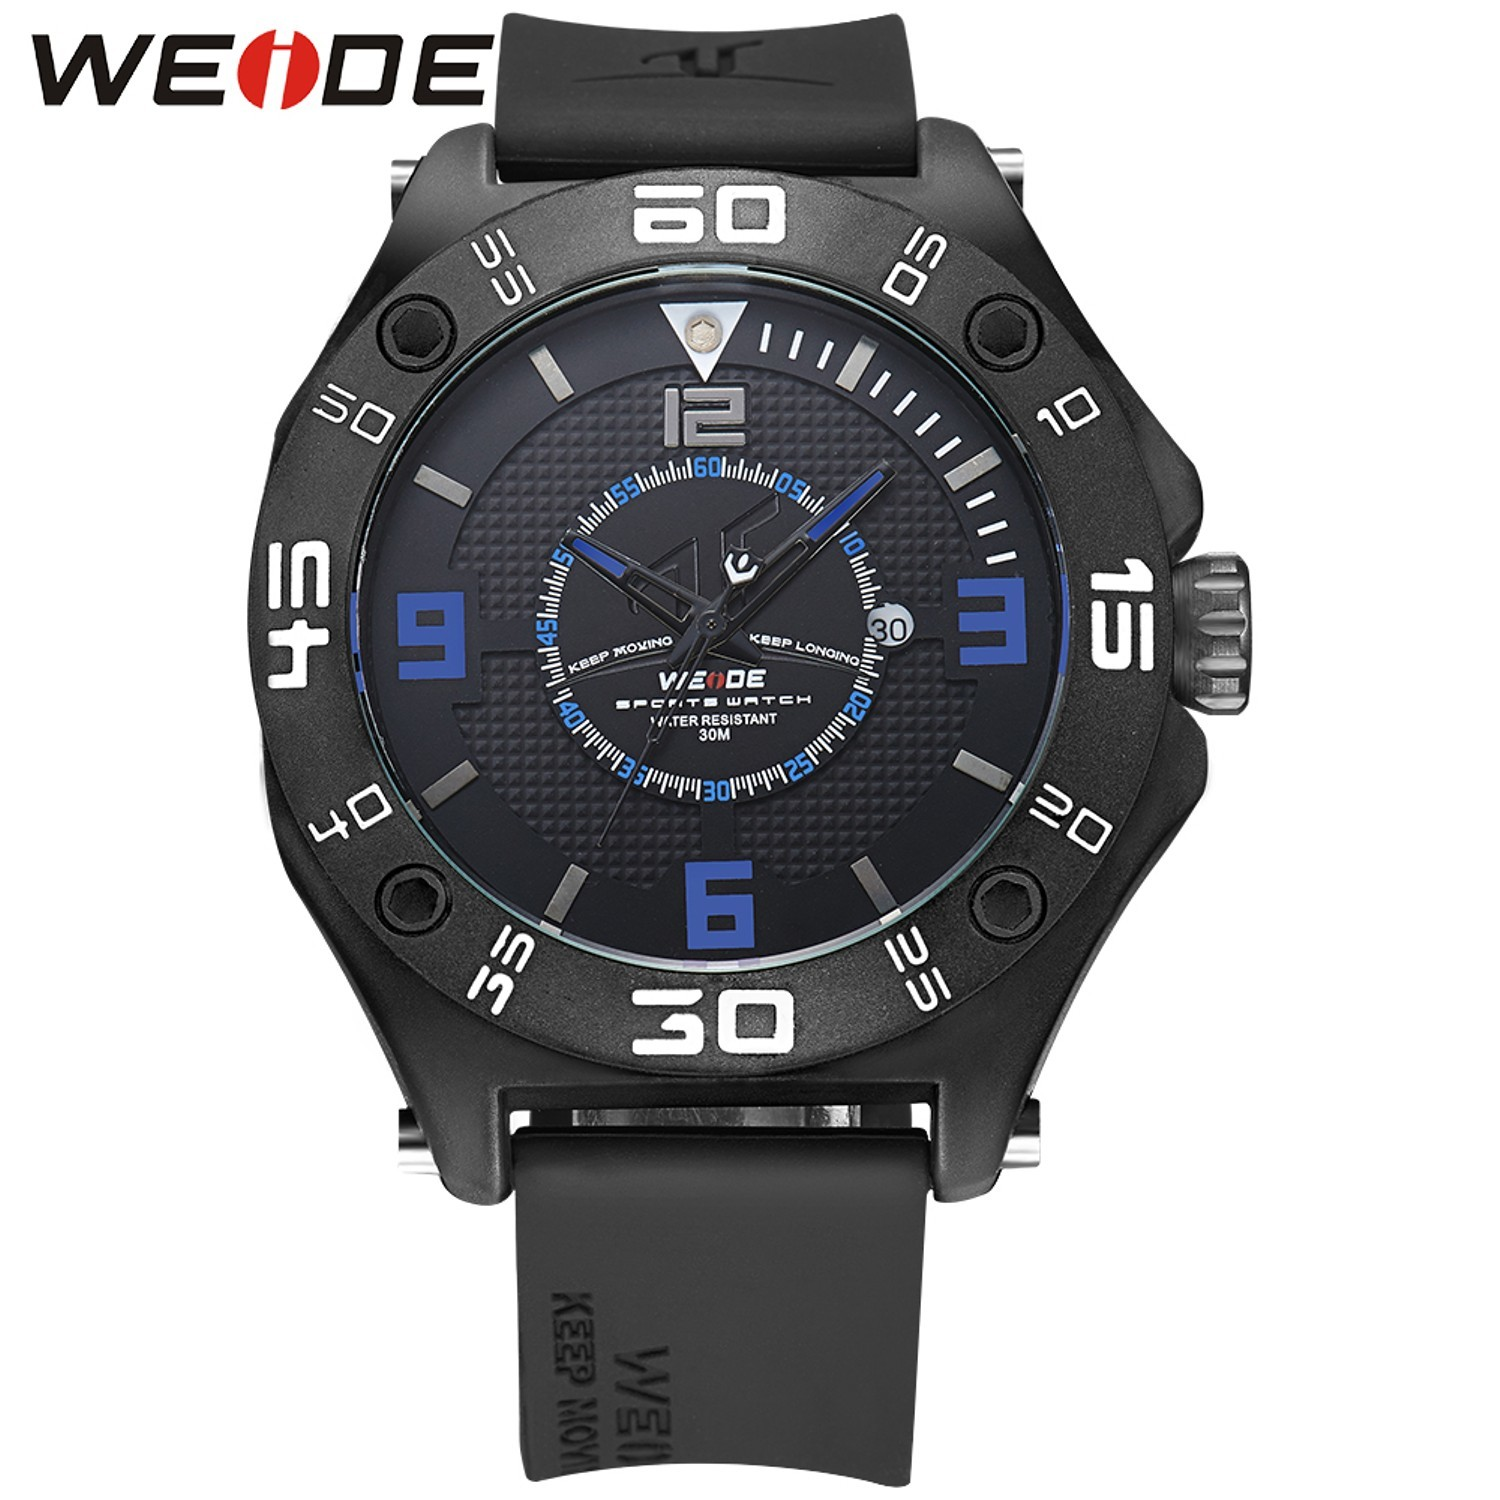 WEIDE-Universe-Series-Fashion-Men-Watches-Quartz-Movement-30-Meter-Waterproof-Calendar-Silicone-Strap-Blue-Dial_1500x1500_STRETCH_493.jpg